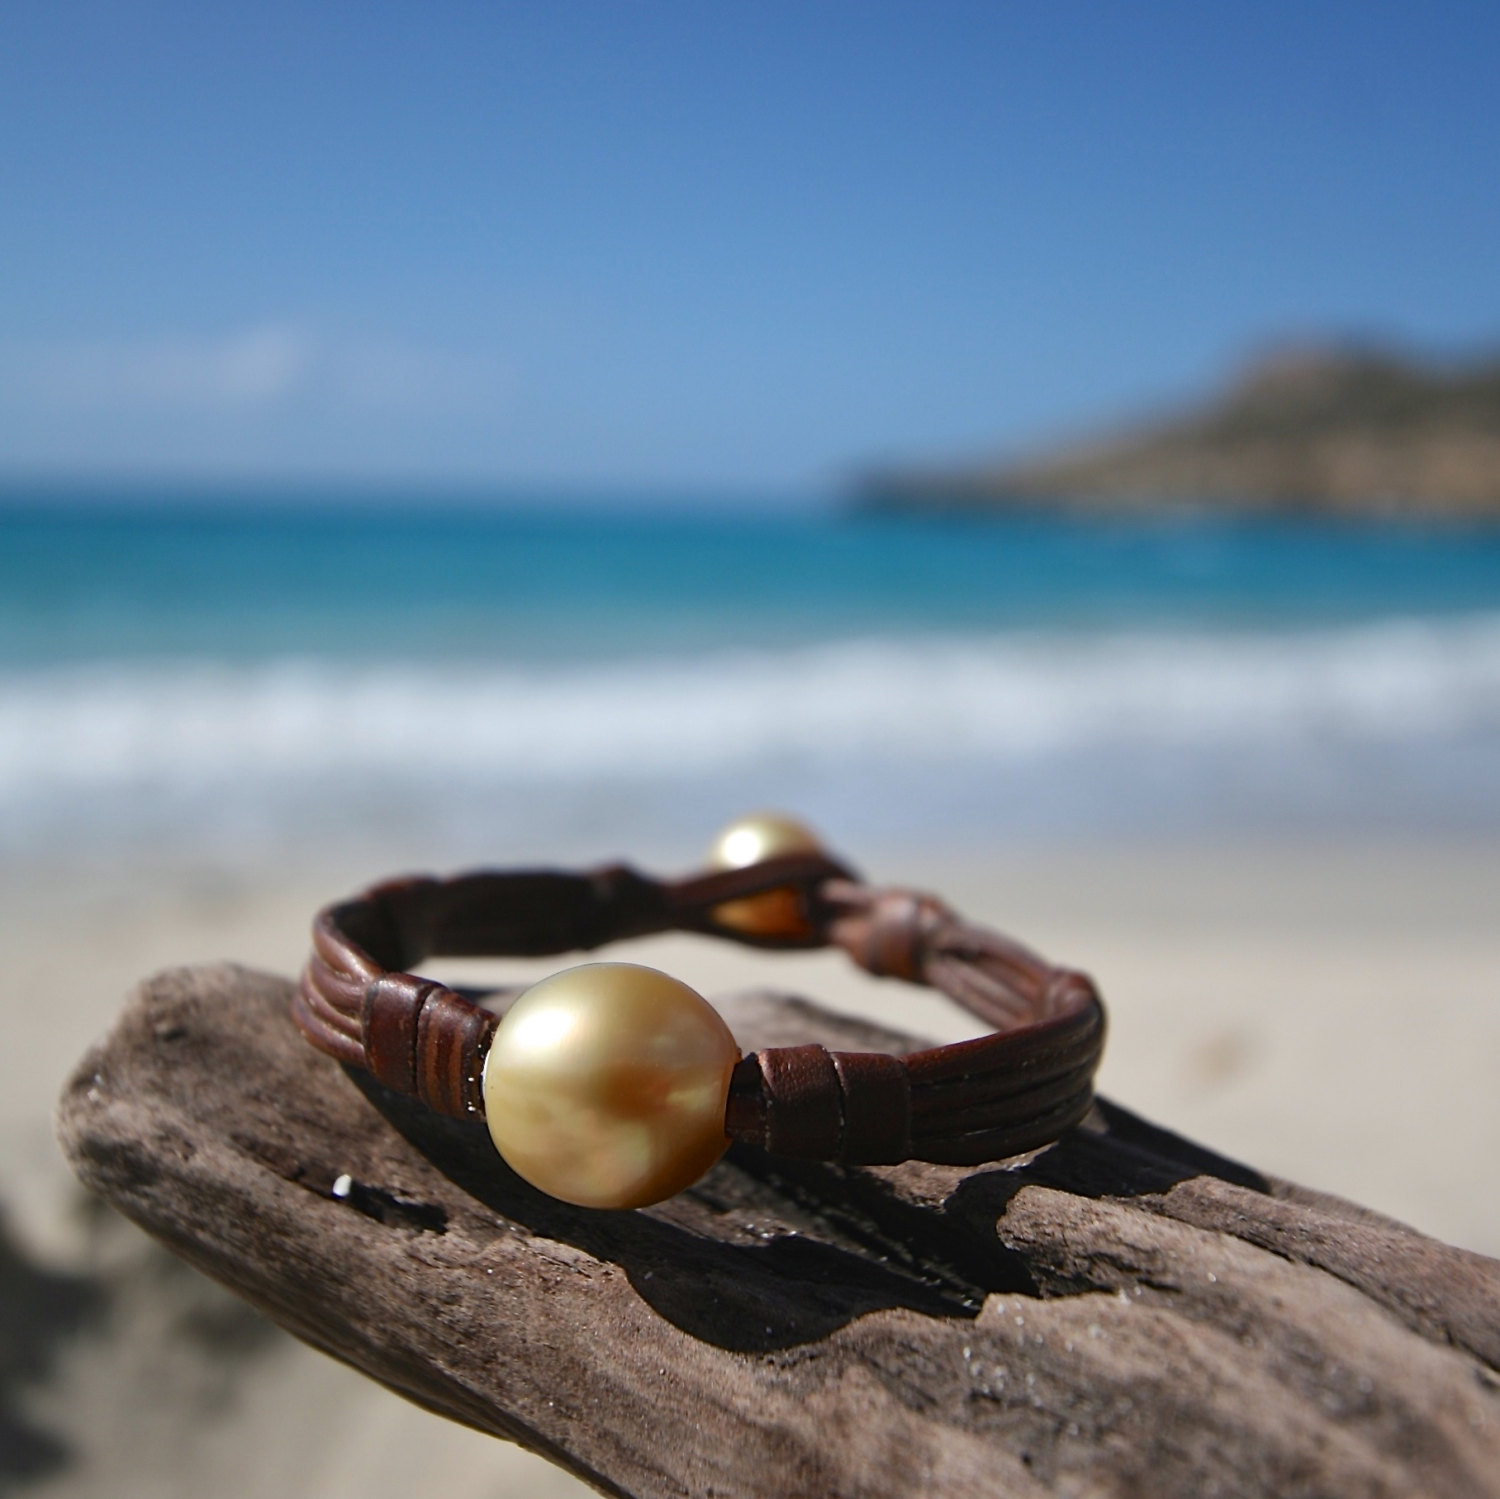 Single ENORMOUS Australian cultured GOLD pearl bracelet on leather, huge cultured pearl, leather and pearls jewelry, boho, beach jewelry